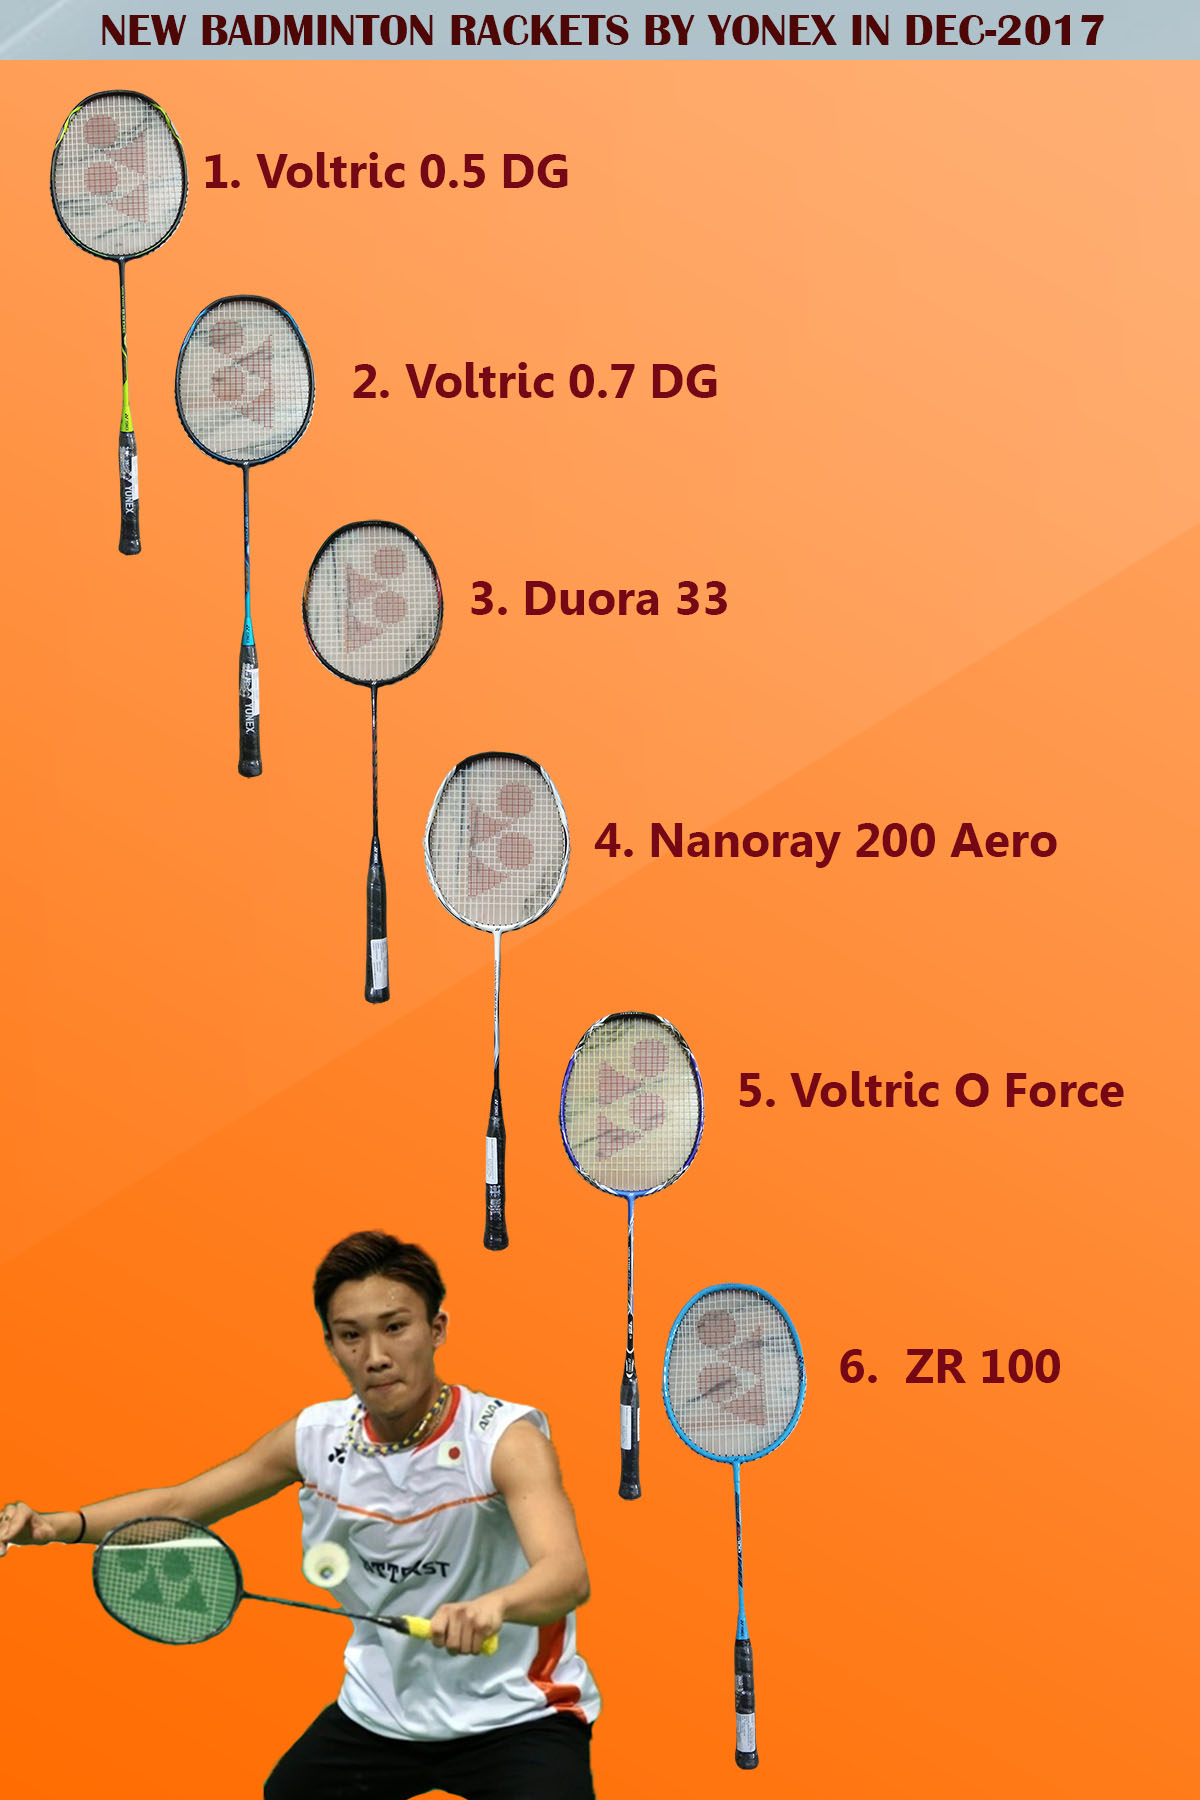 NEW BADMINTON RACKET BY YONEX IN DEC 2017_1